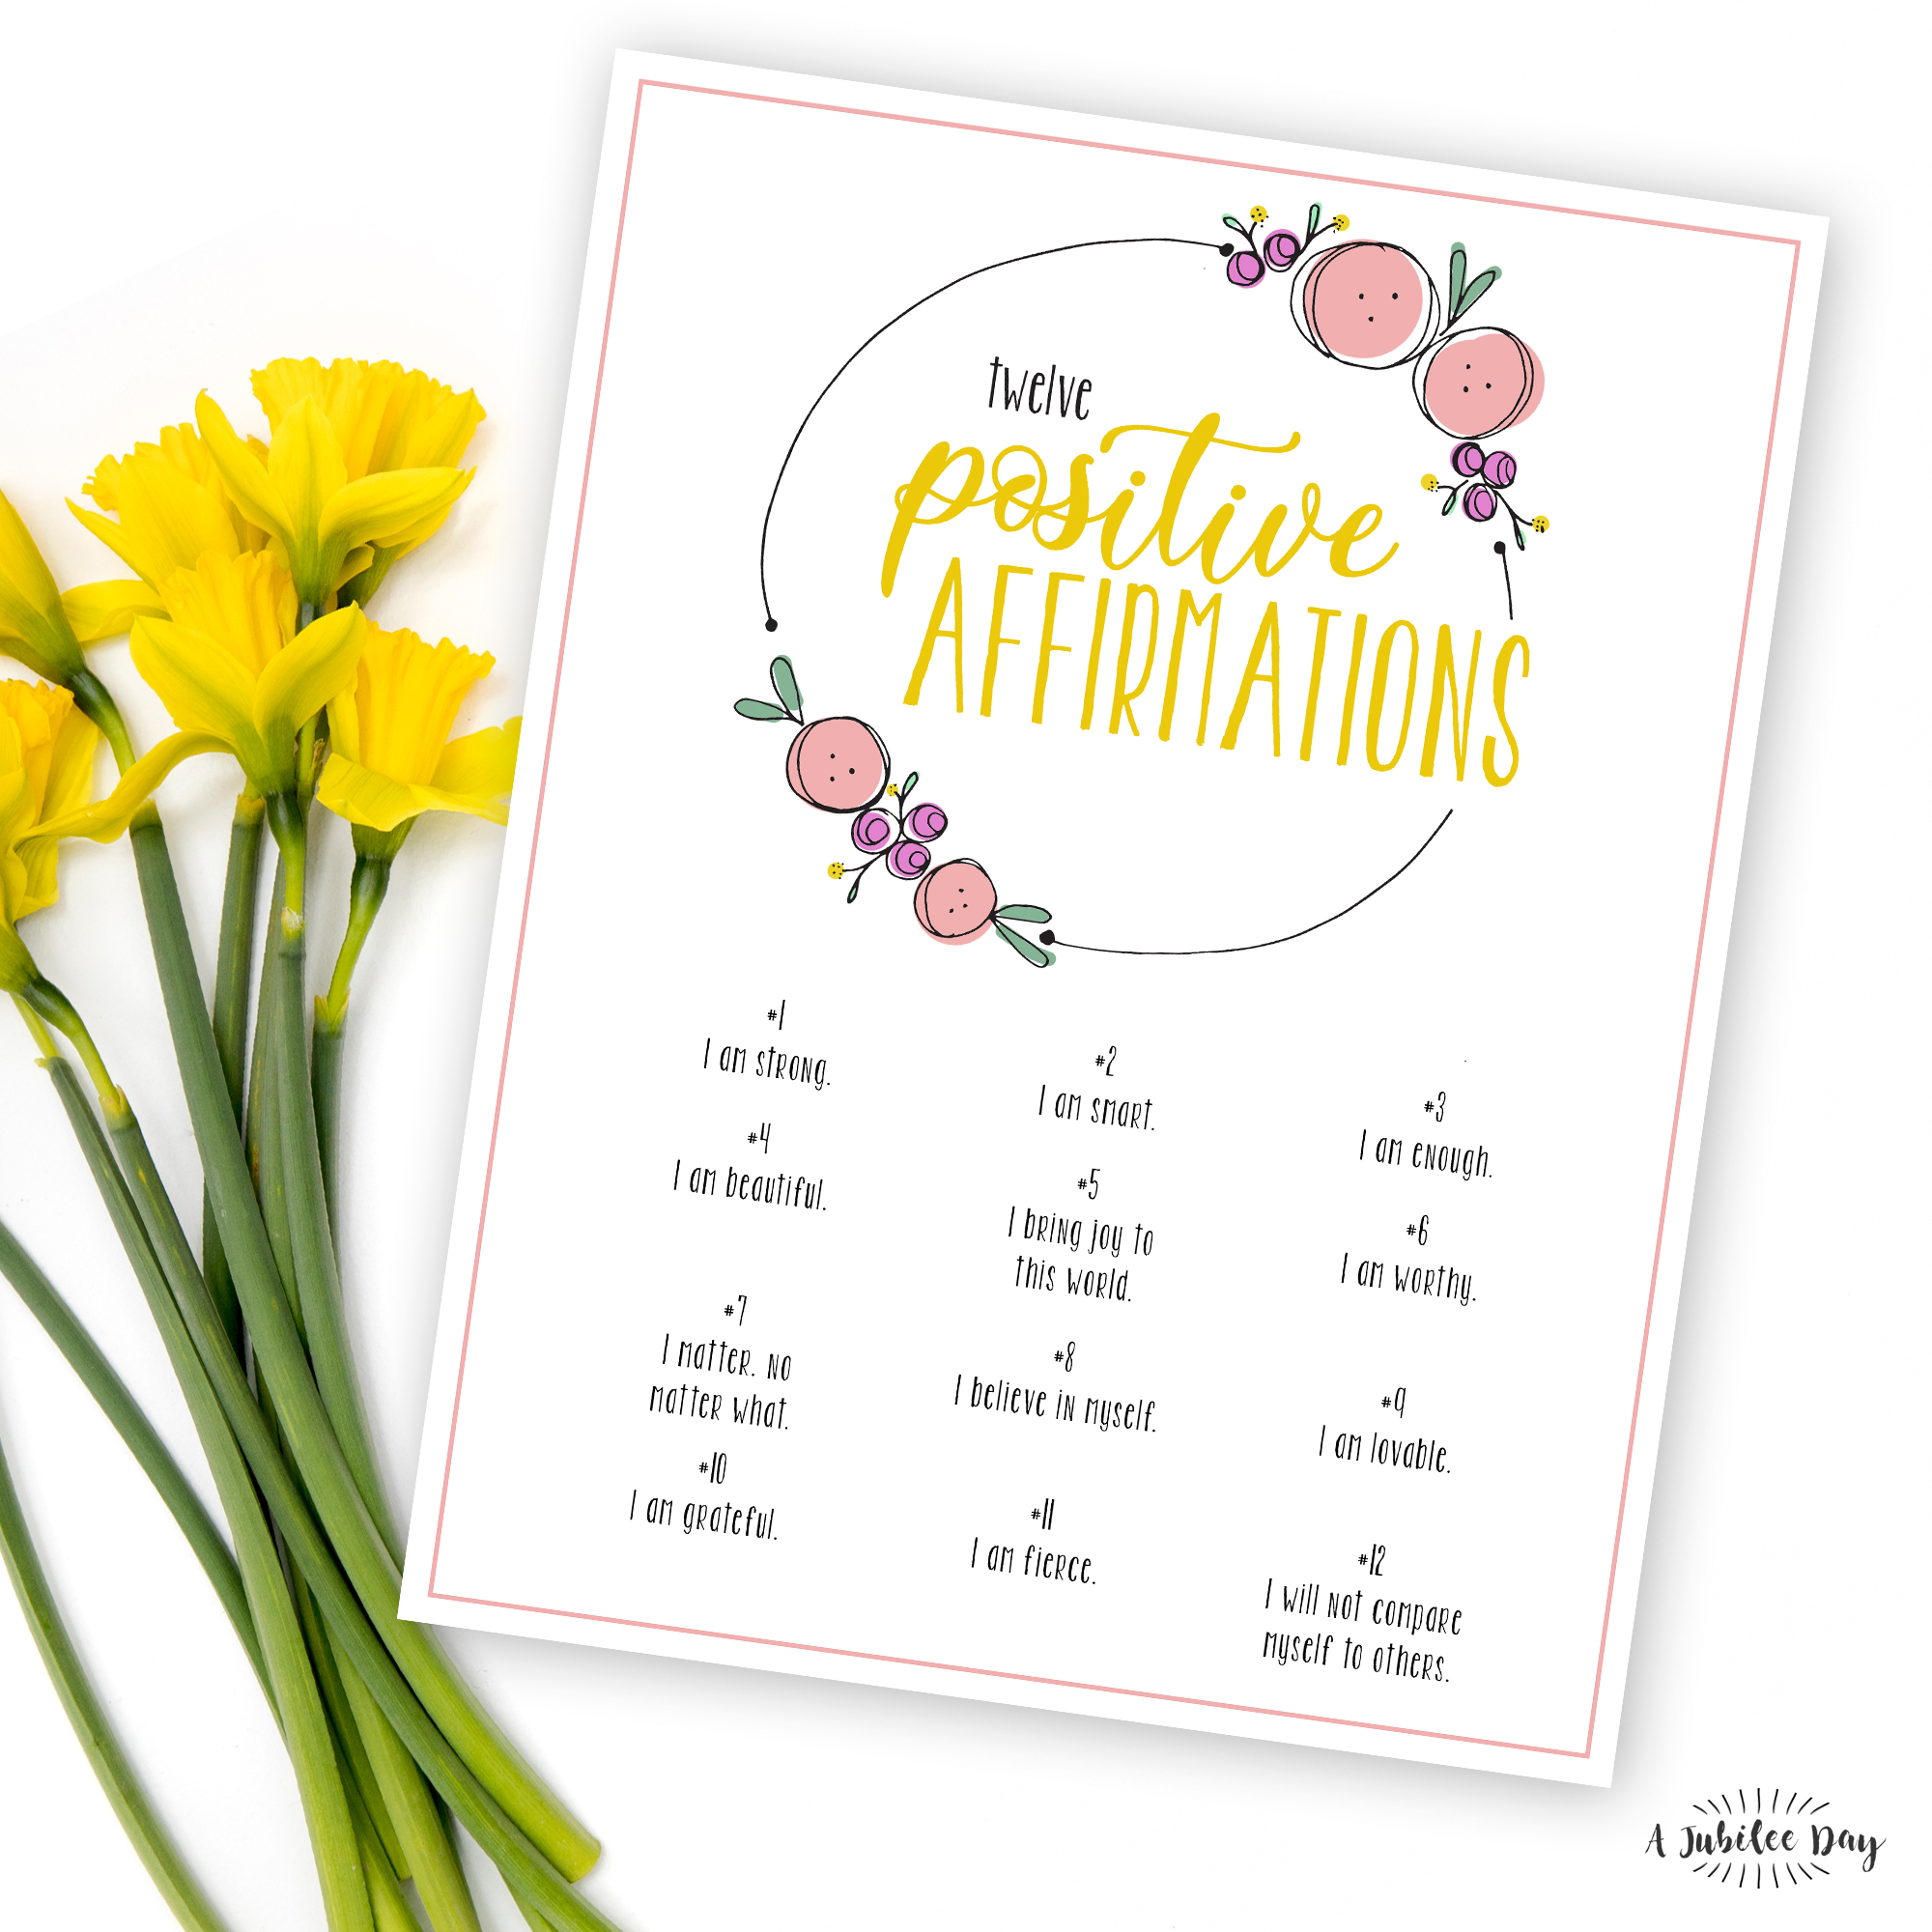 photo about Printable Affirmations titled 12 Favourable Affirmations Printable - A Jubilee Working day